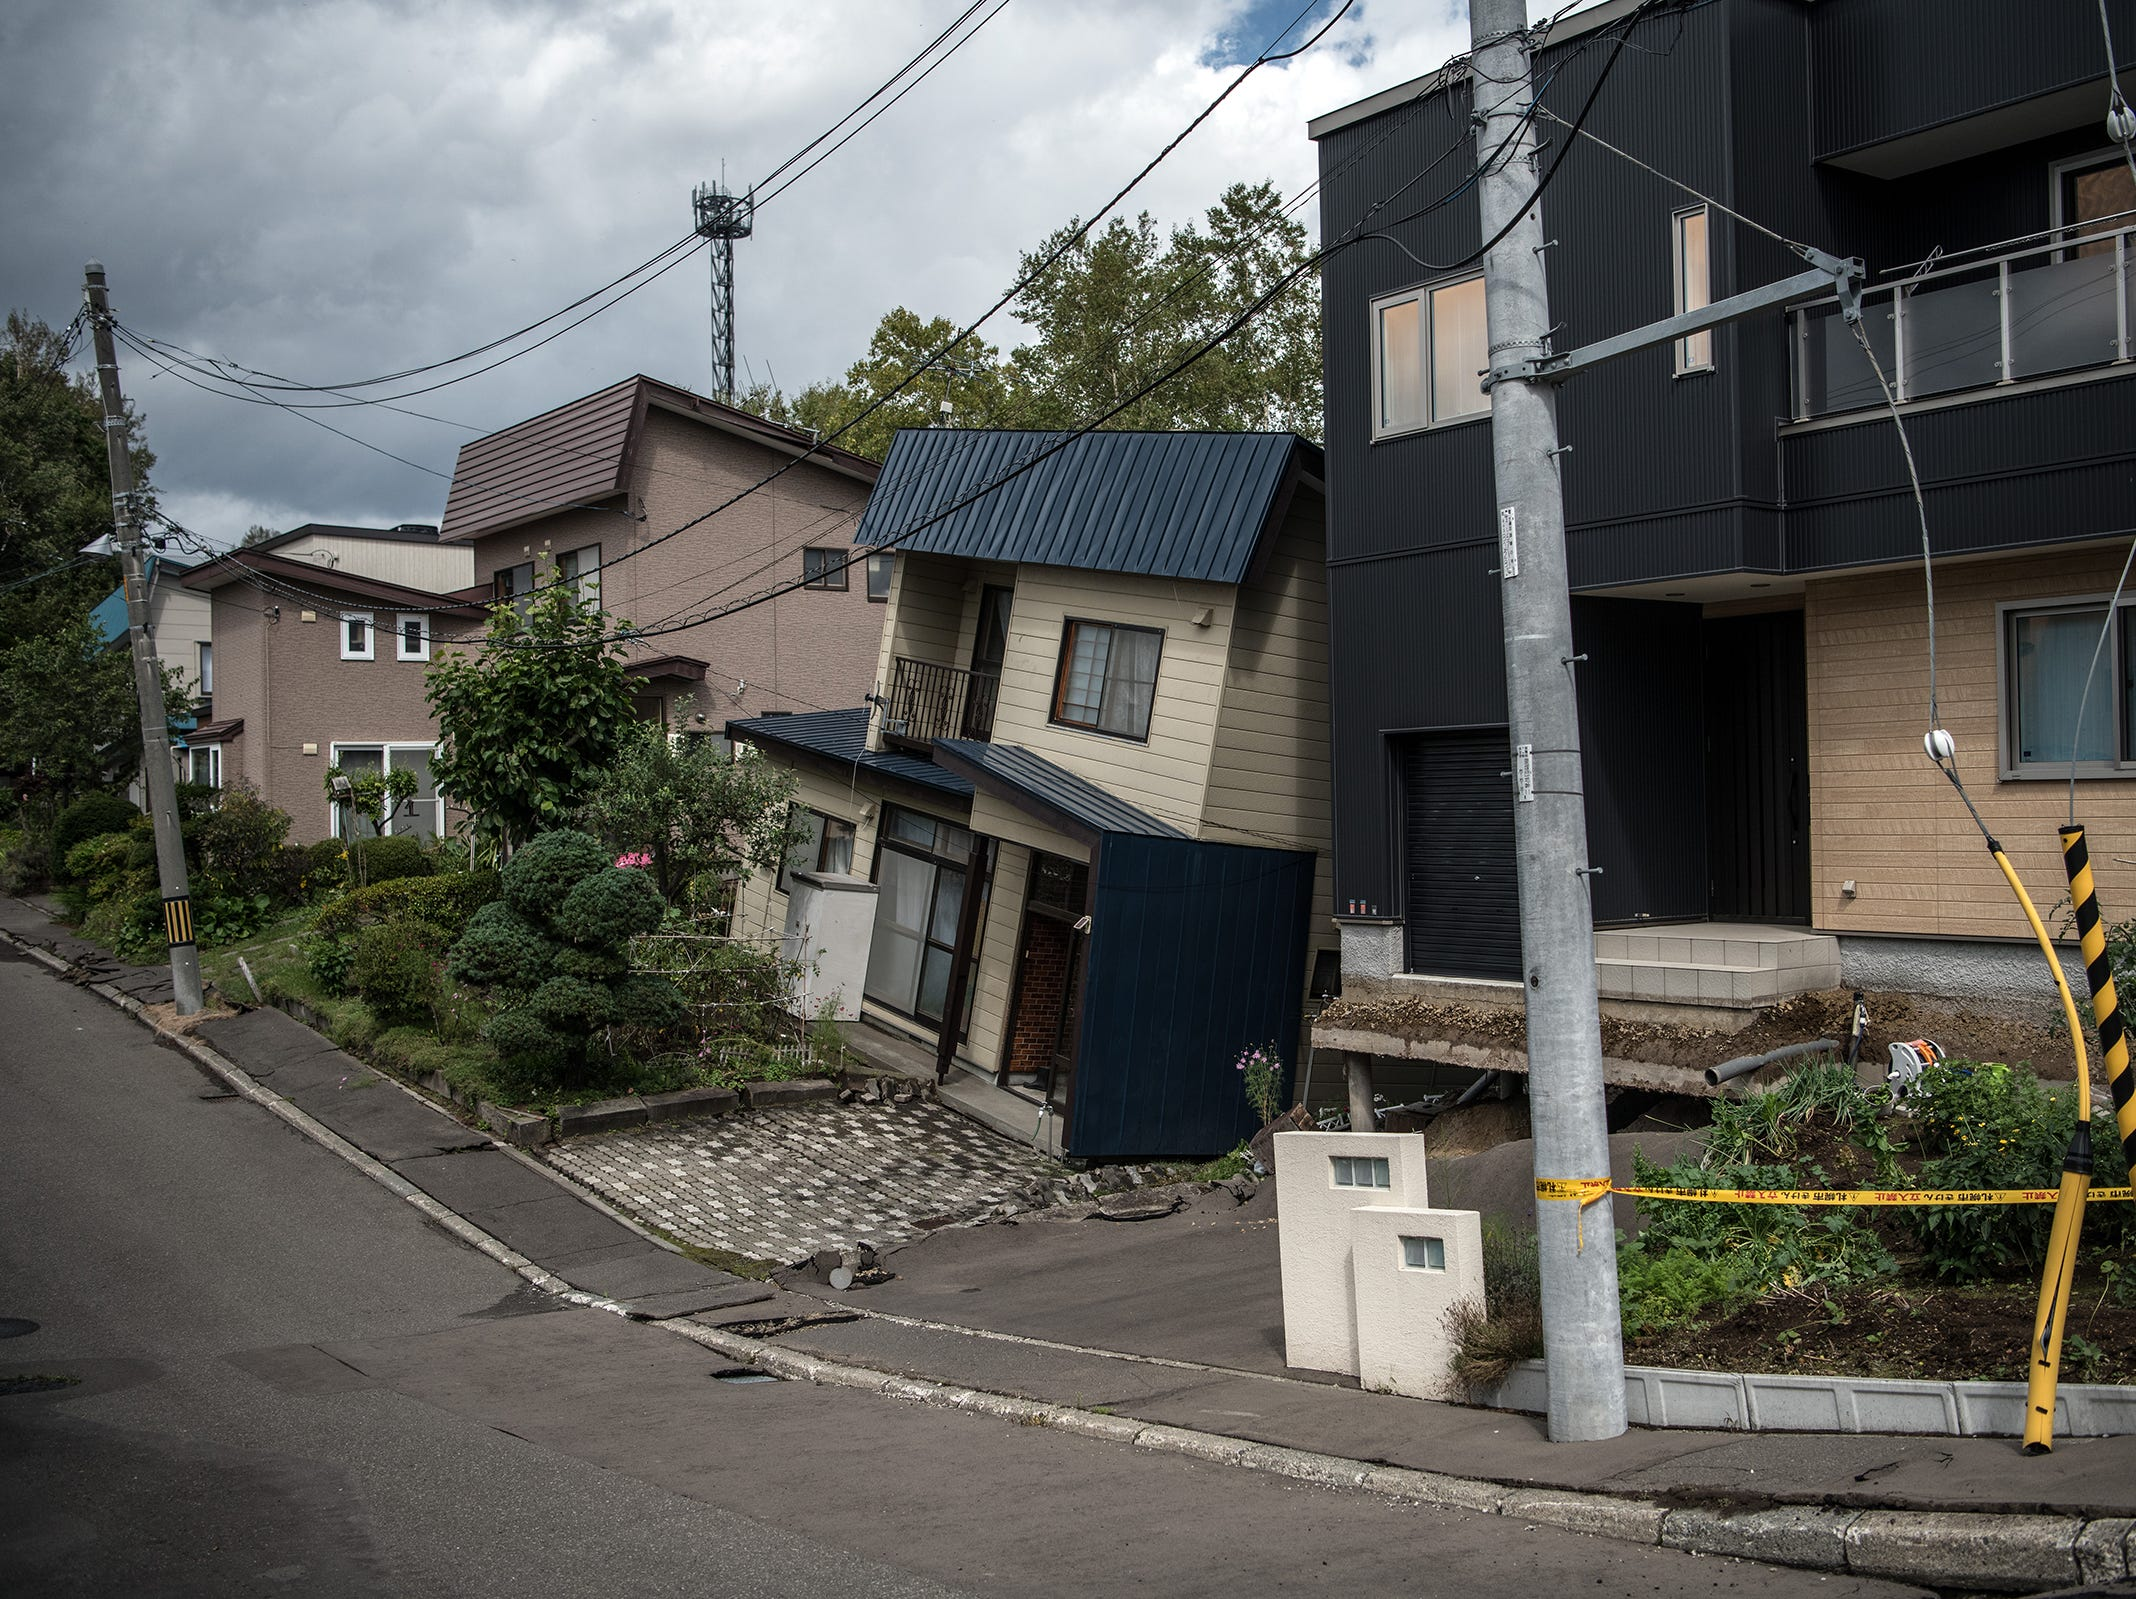 A house leans over following the partial collapse of the ground around it after an earthquake, on Saturday, in Kiyota, Japan.